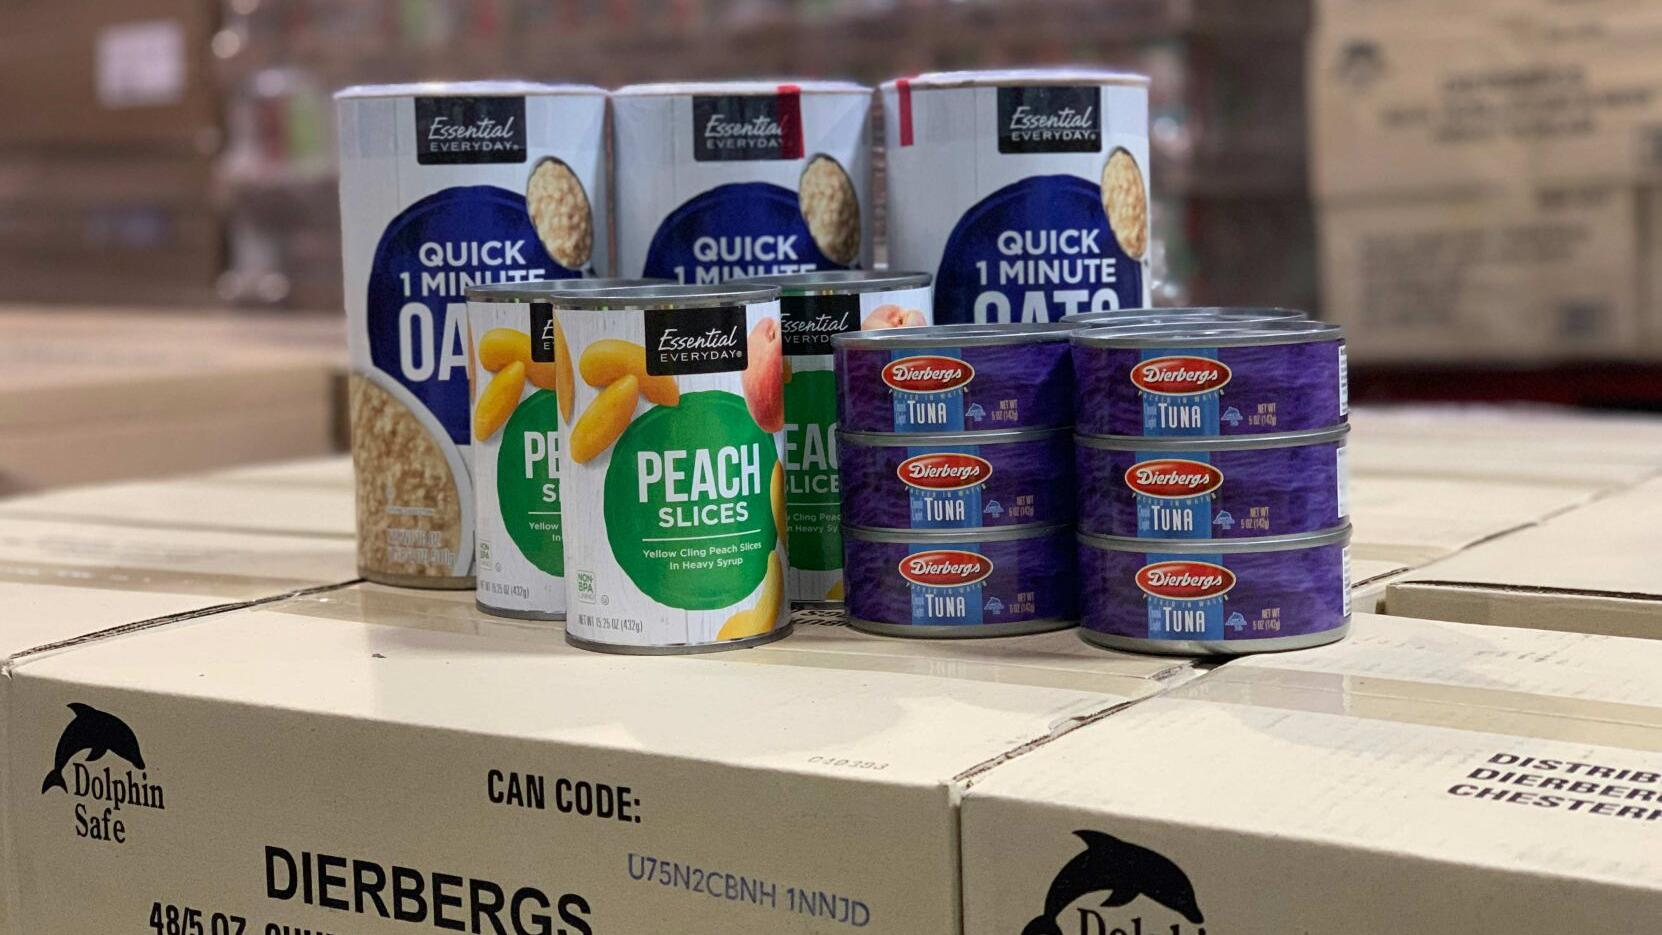 Dierbergs' Campaign Raises More Than $118,000 for Operation Food Search